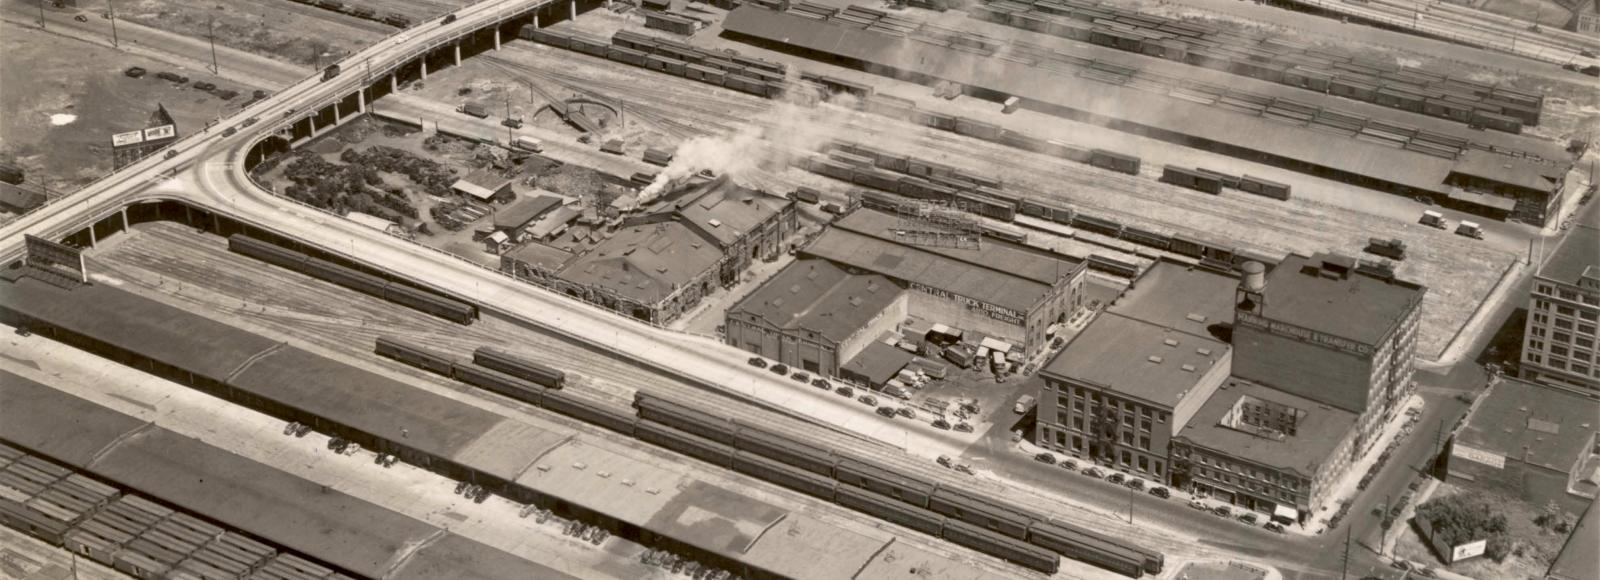 An aerial view of the Natural Capital Center c. the 1930s. At that time the building was completely surrounded by rail yards and transportation terminals.